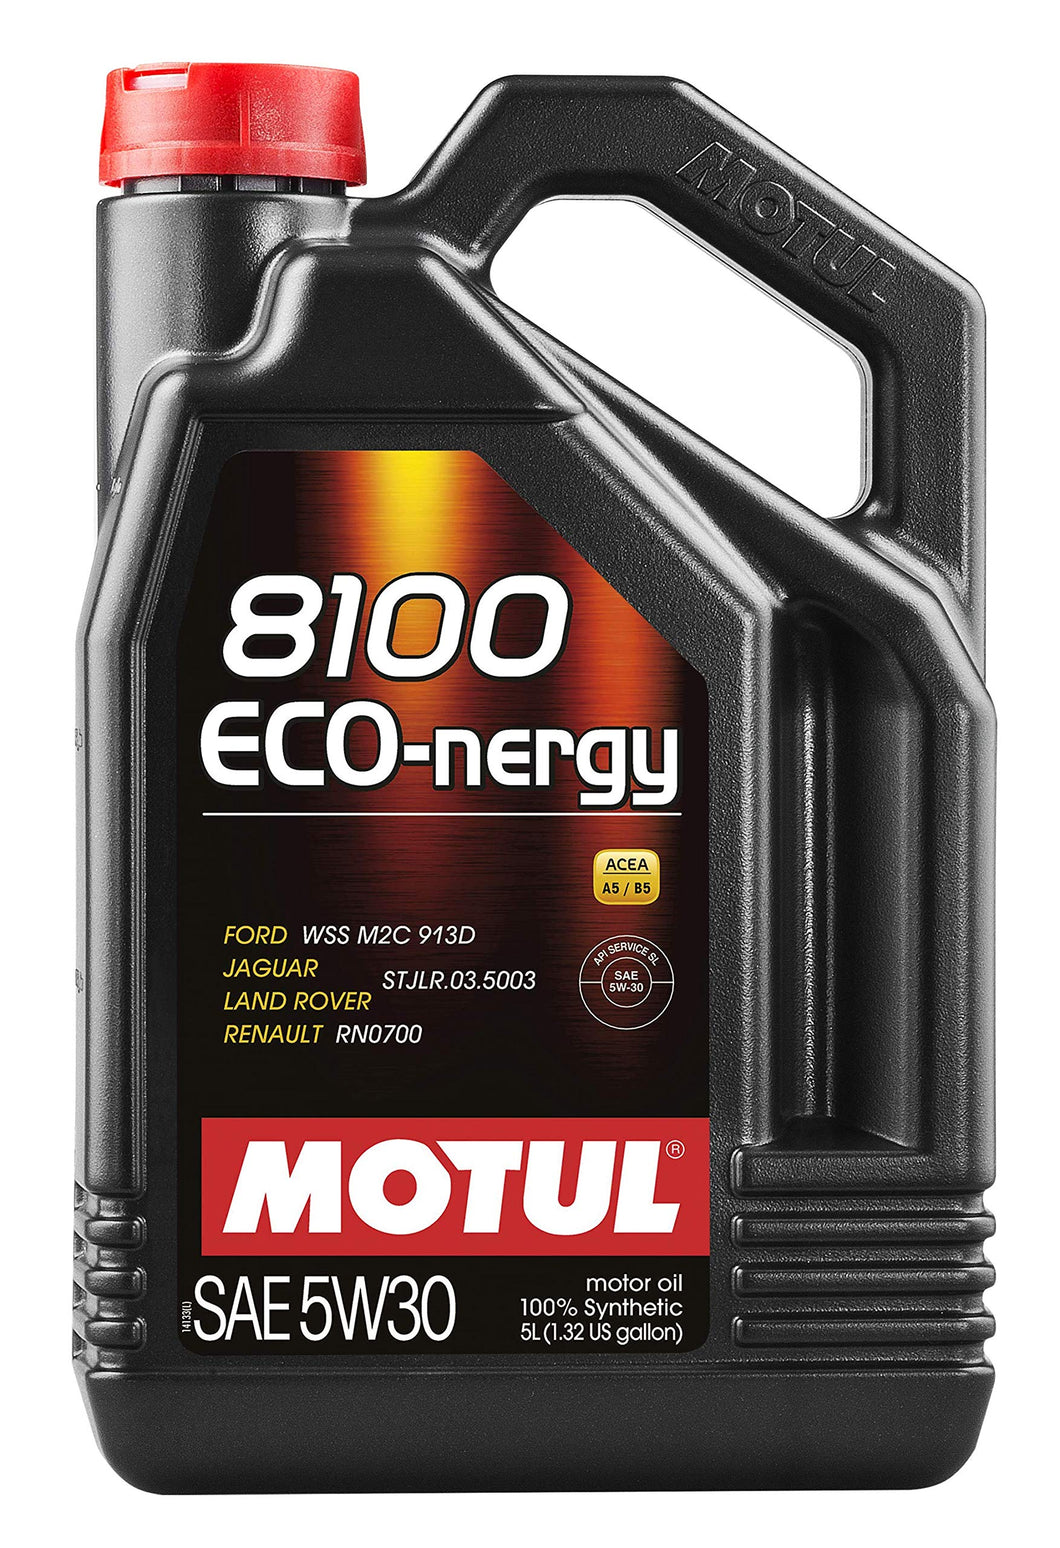 Motul 102898 8100 Eco-nergy 5W-30 100 Percent Synthetic - 5 Liter